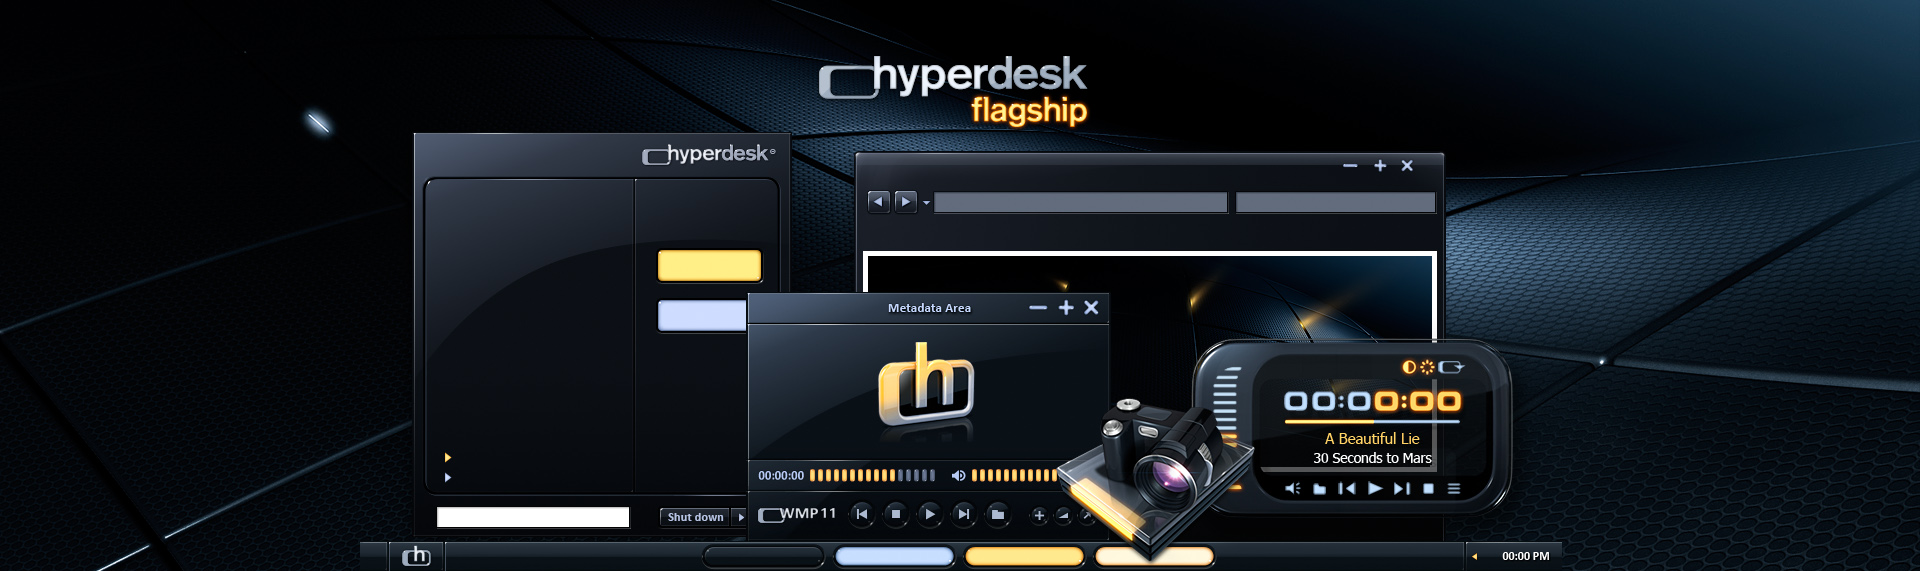 Hyperdesk Flagship  Client: The Skins Factory  When our highly capable interface design team at The Skins Factory developed the Hyperdesk application's user interface, we created a futuristic design. We've ported those design elements into a Windows desktop theme called - Hyperdesk Flagship. Includes 2 themes - Pulse & Deep Shadows. Also included are 6 folder sets, a set of stunning icons, wallpapers, a Windows Media Player 11 video skin and a iTunes/Windows Media Player audio remote. This desktop theme is no longer available.